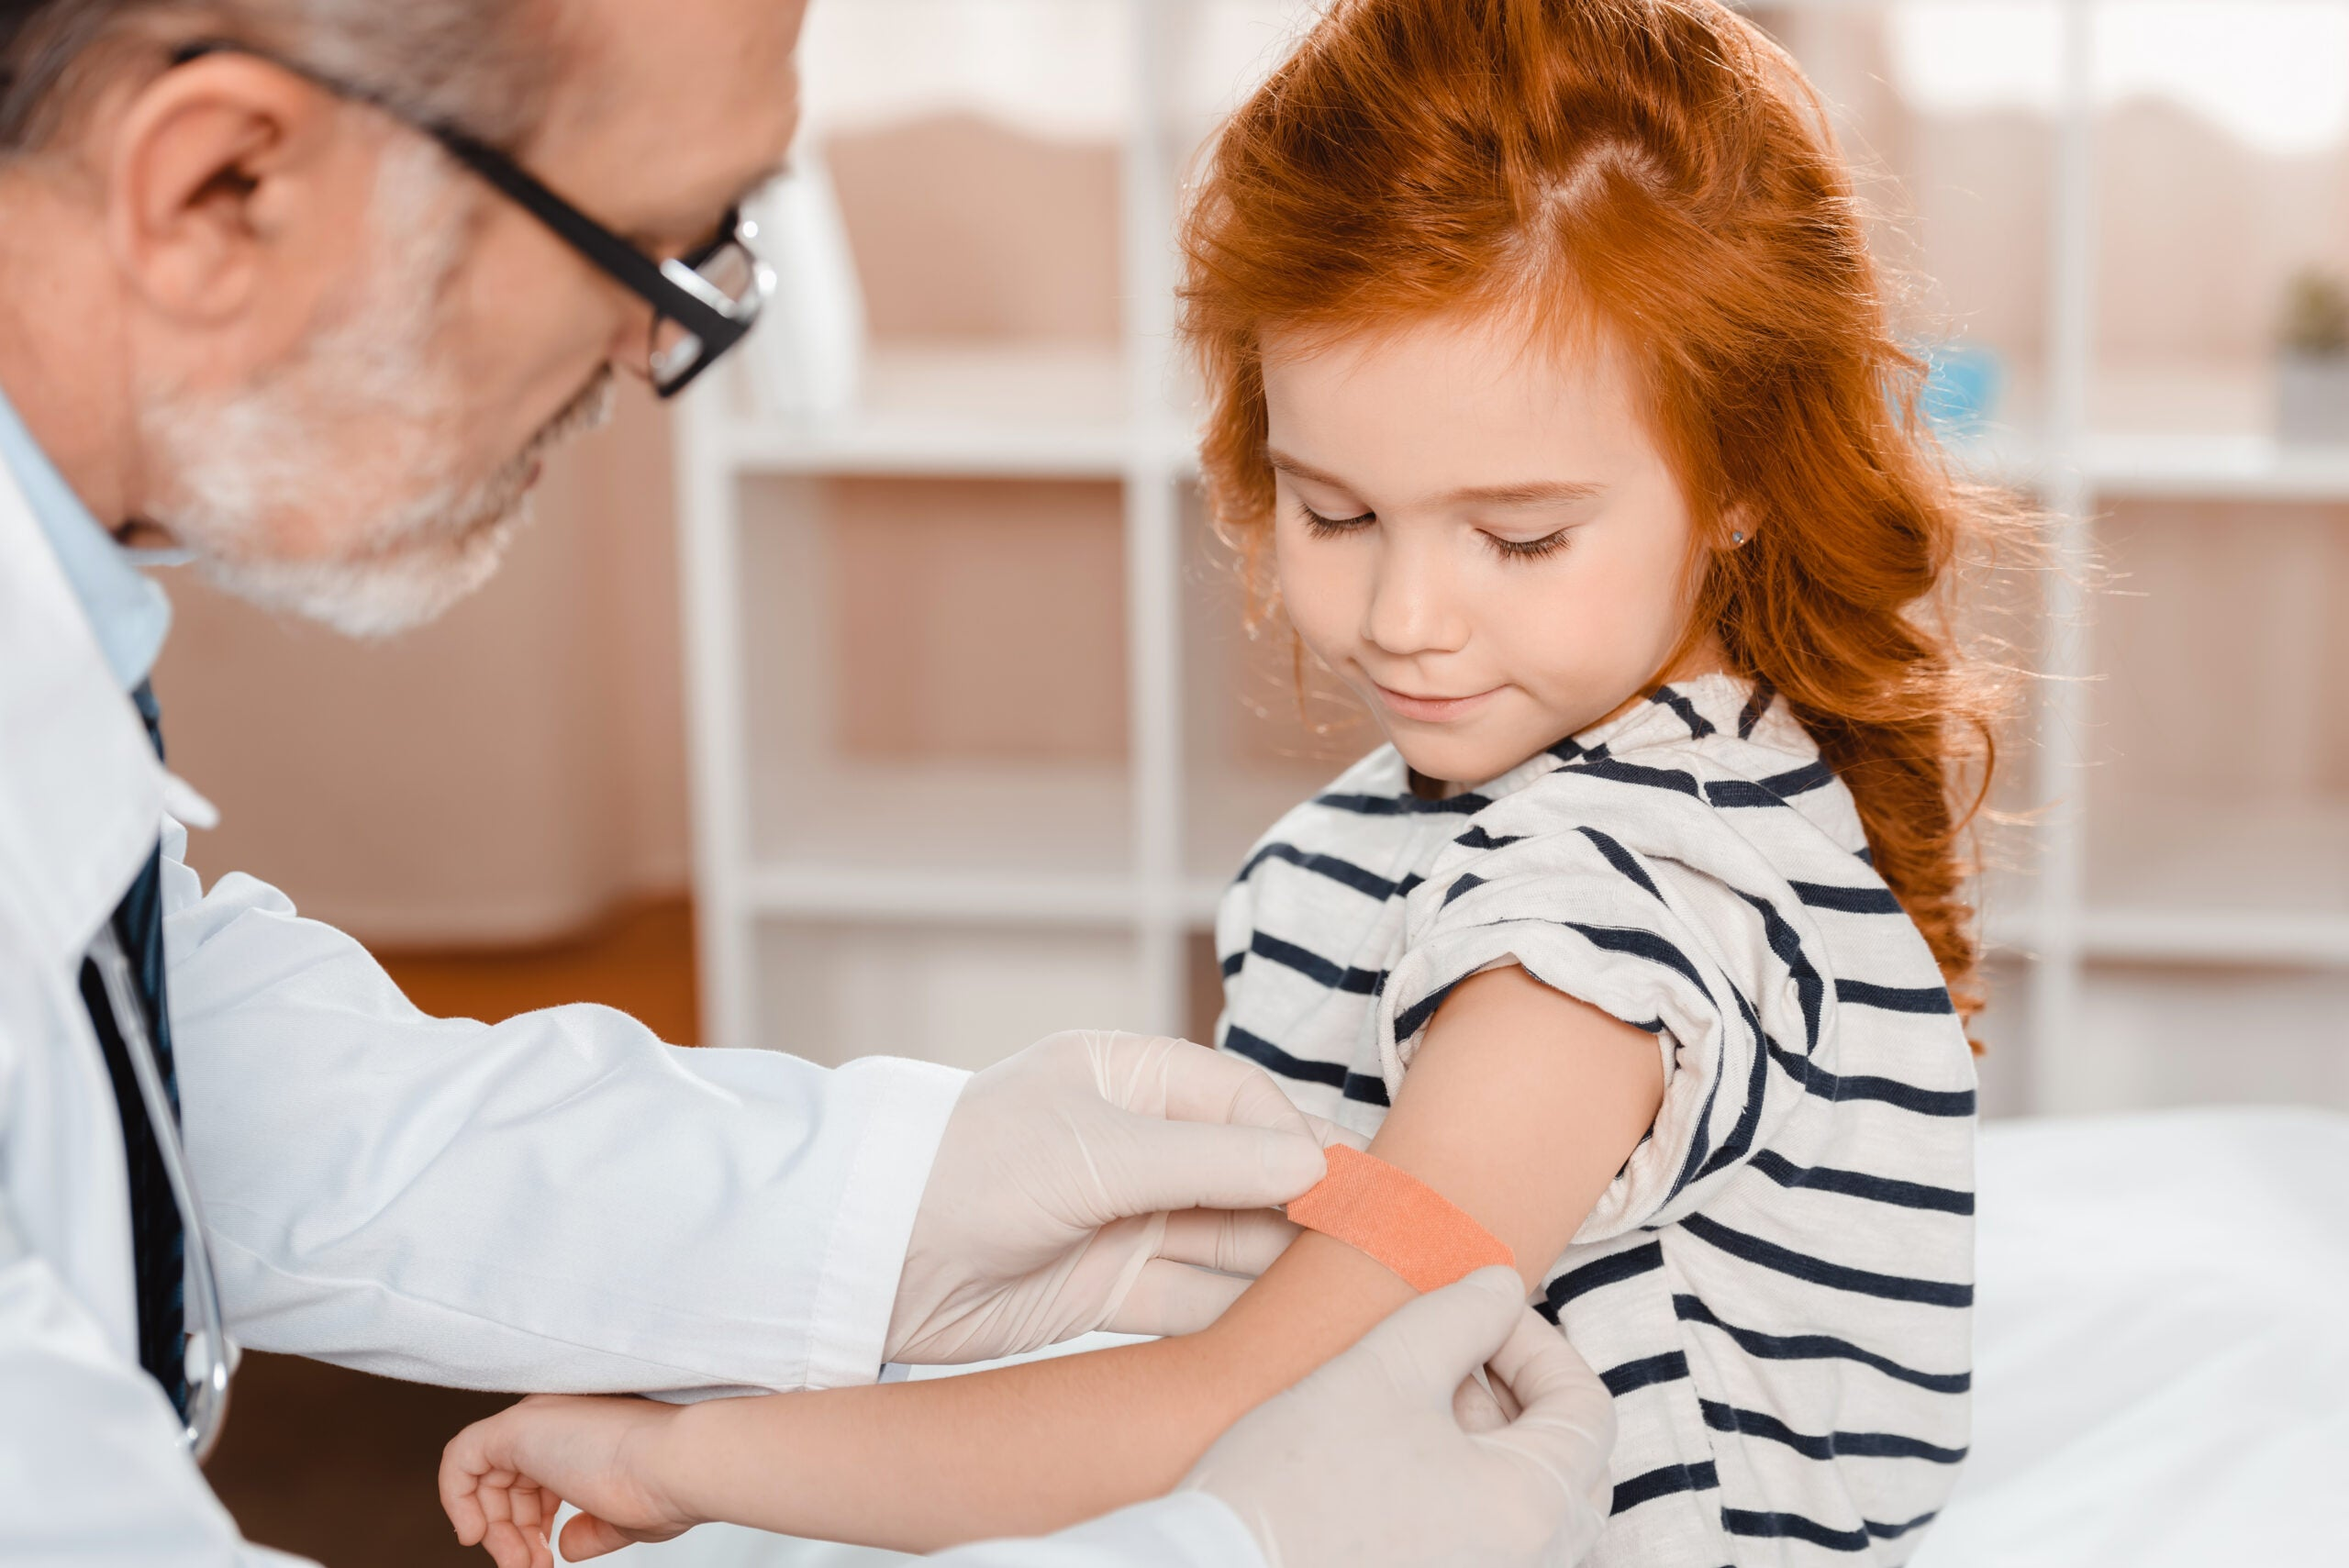 child getting a vaccine by her doctor